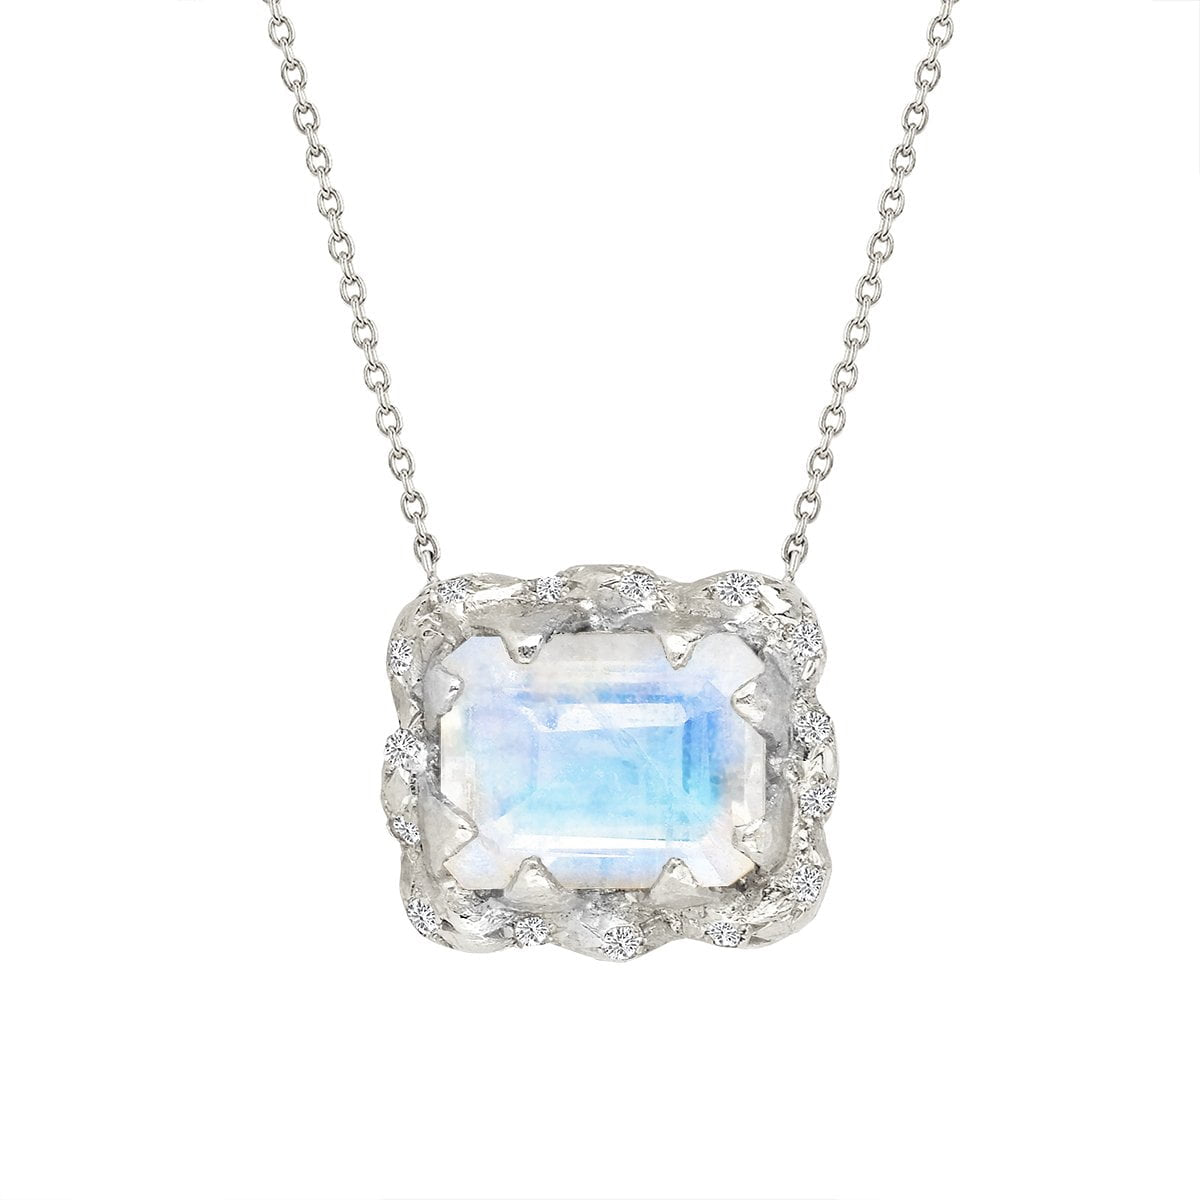 18k Queen Emerald Cut Moonstone Necklace with Sprinkled Diamonds